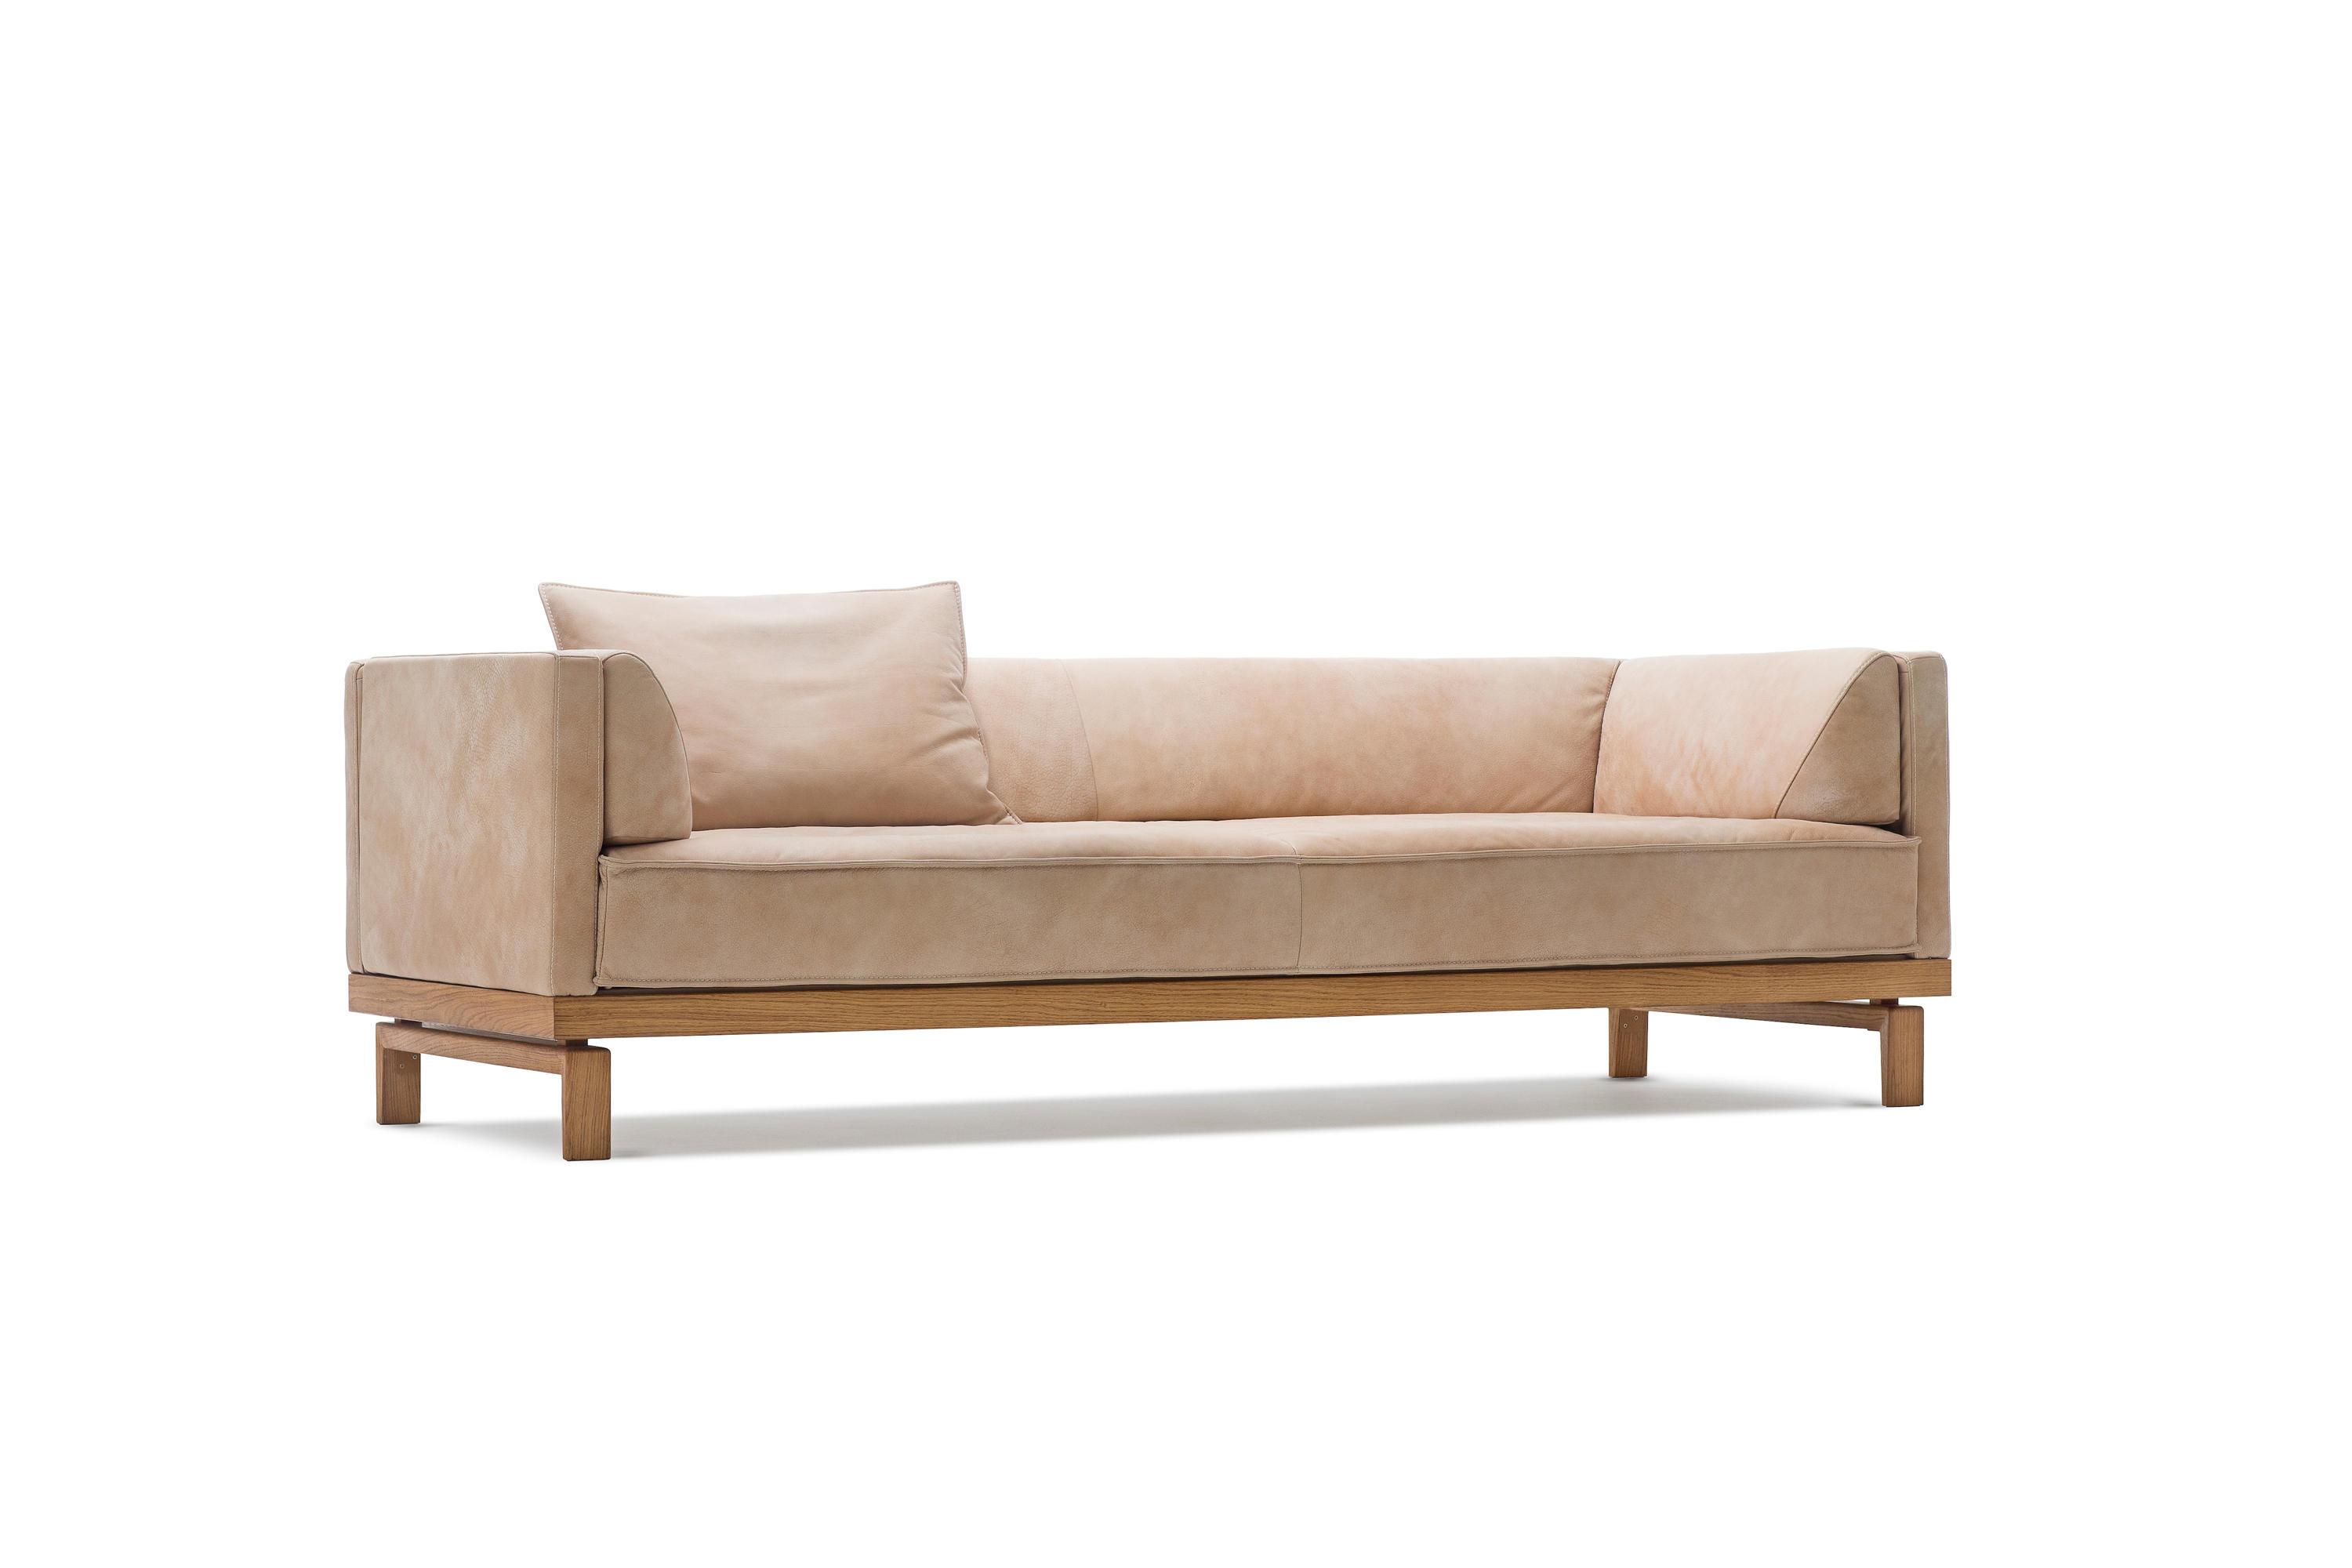 ARCO RELAX SOFA - Sofas from Extraform | Architonic